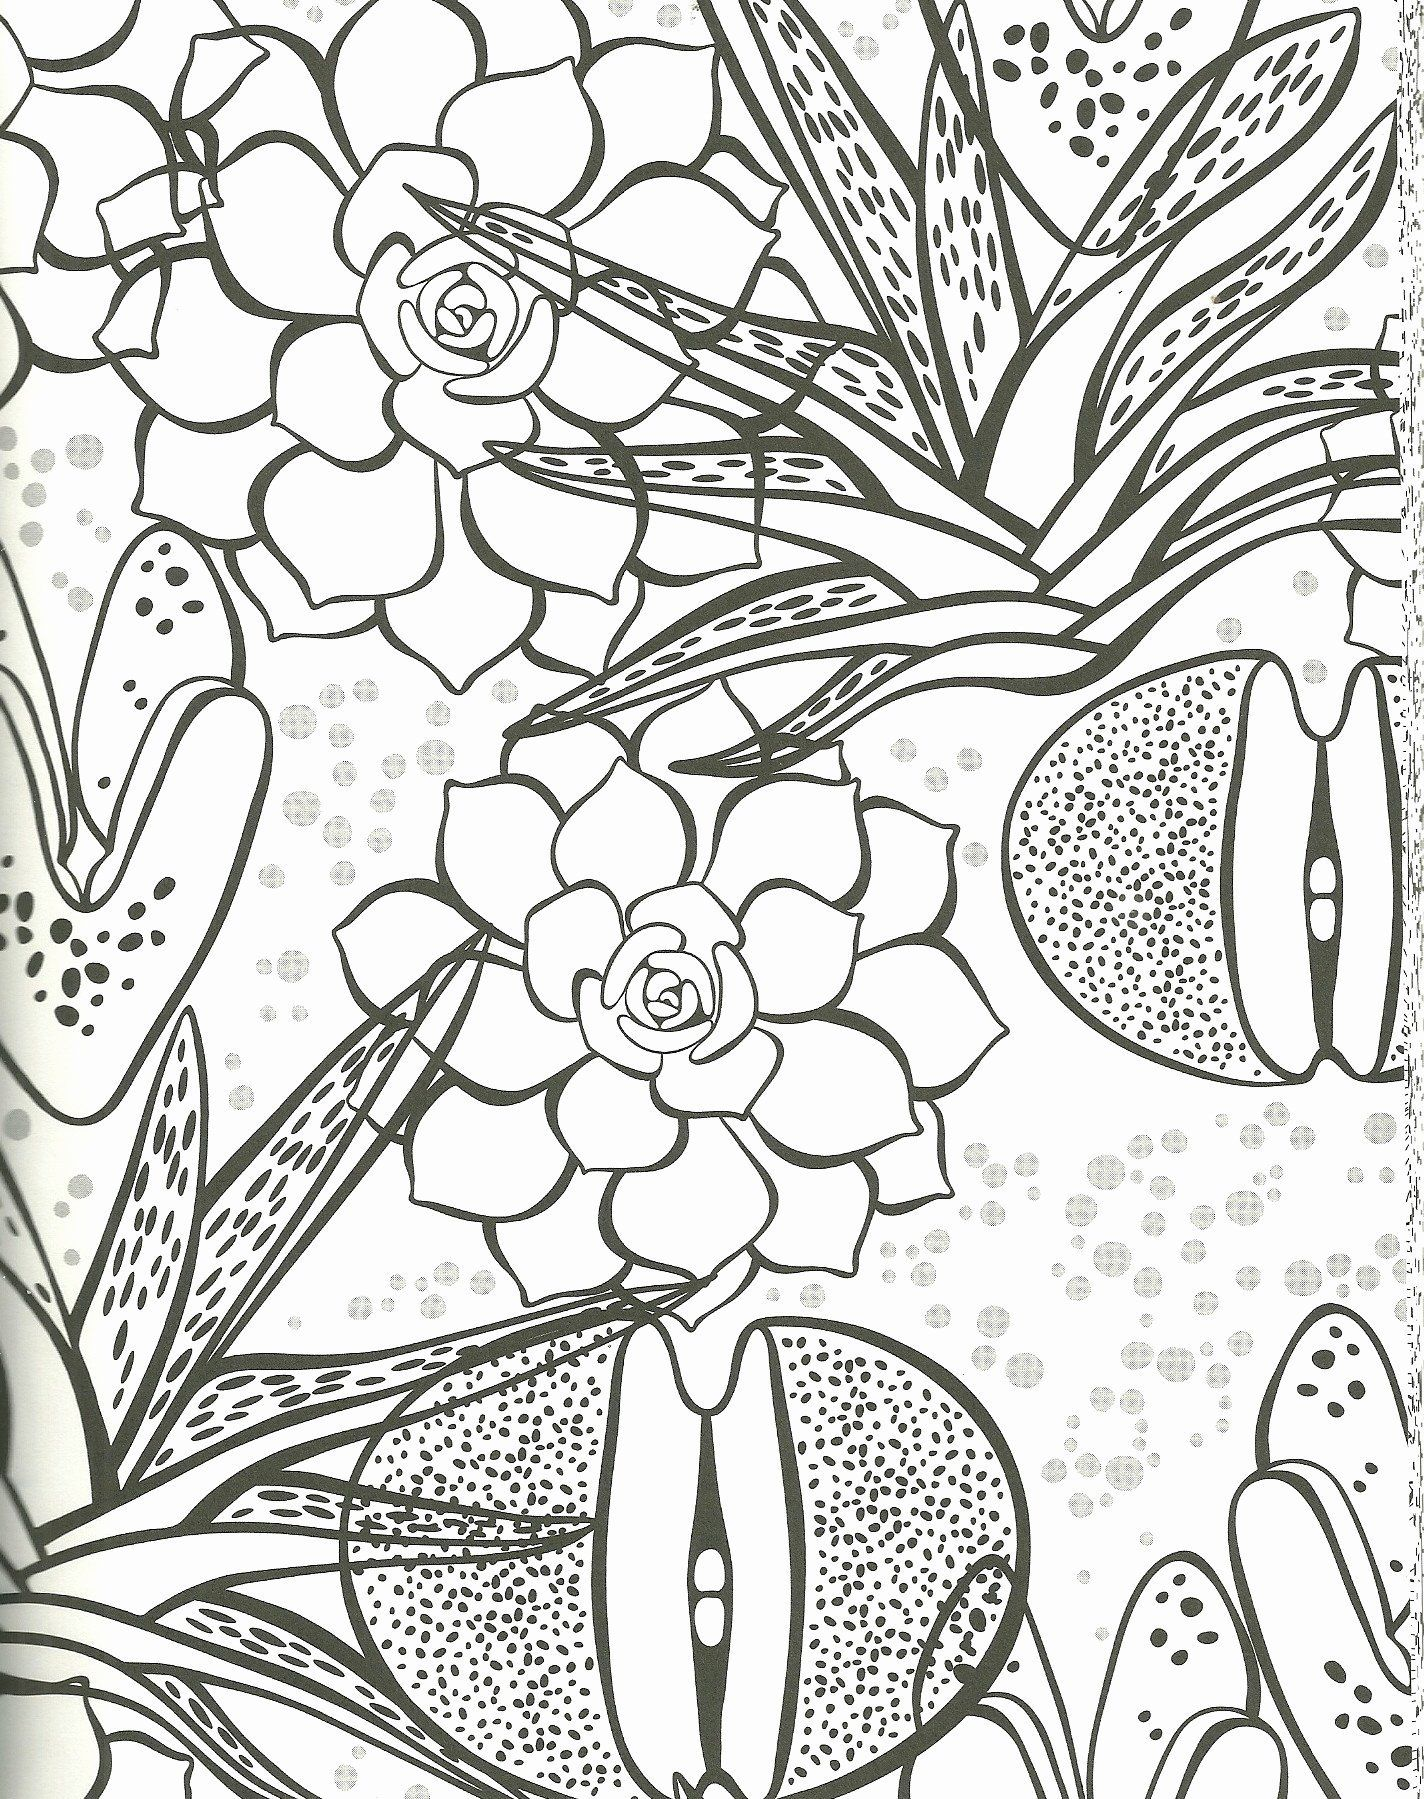 Colouring Flowers For Adults Beautiful 27 Coloring Book Pages For Kids Collectio In 2020 Fall Leaves Coloring Pages Fall Coloring Pages Printable Flower Coloring Pages